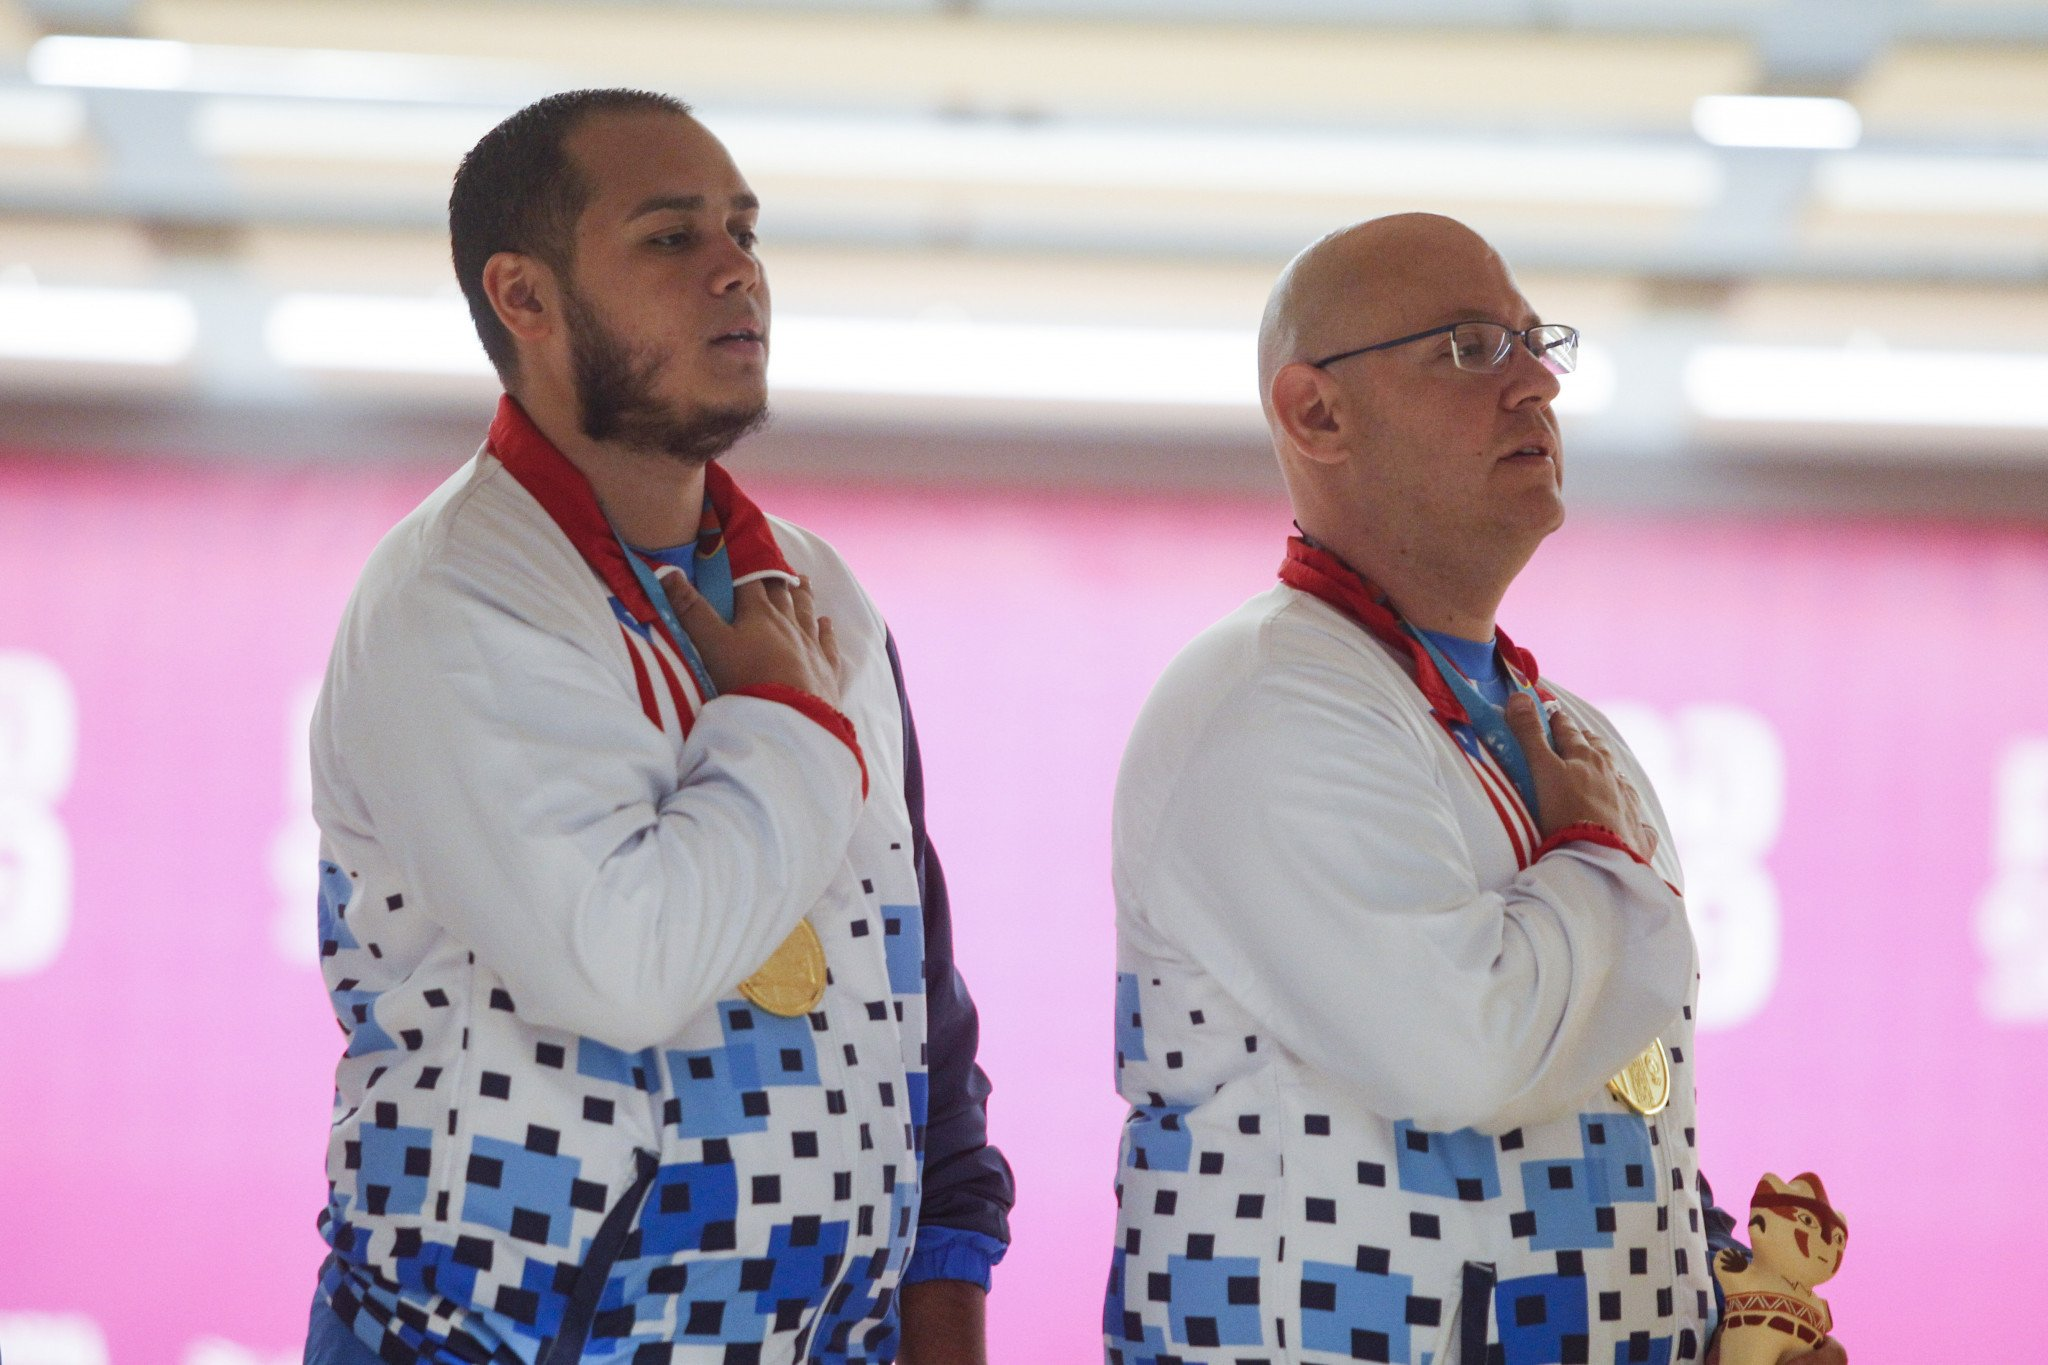 Puerto Rico stripped of Lima 2019 bowling title after positive drug test